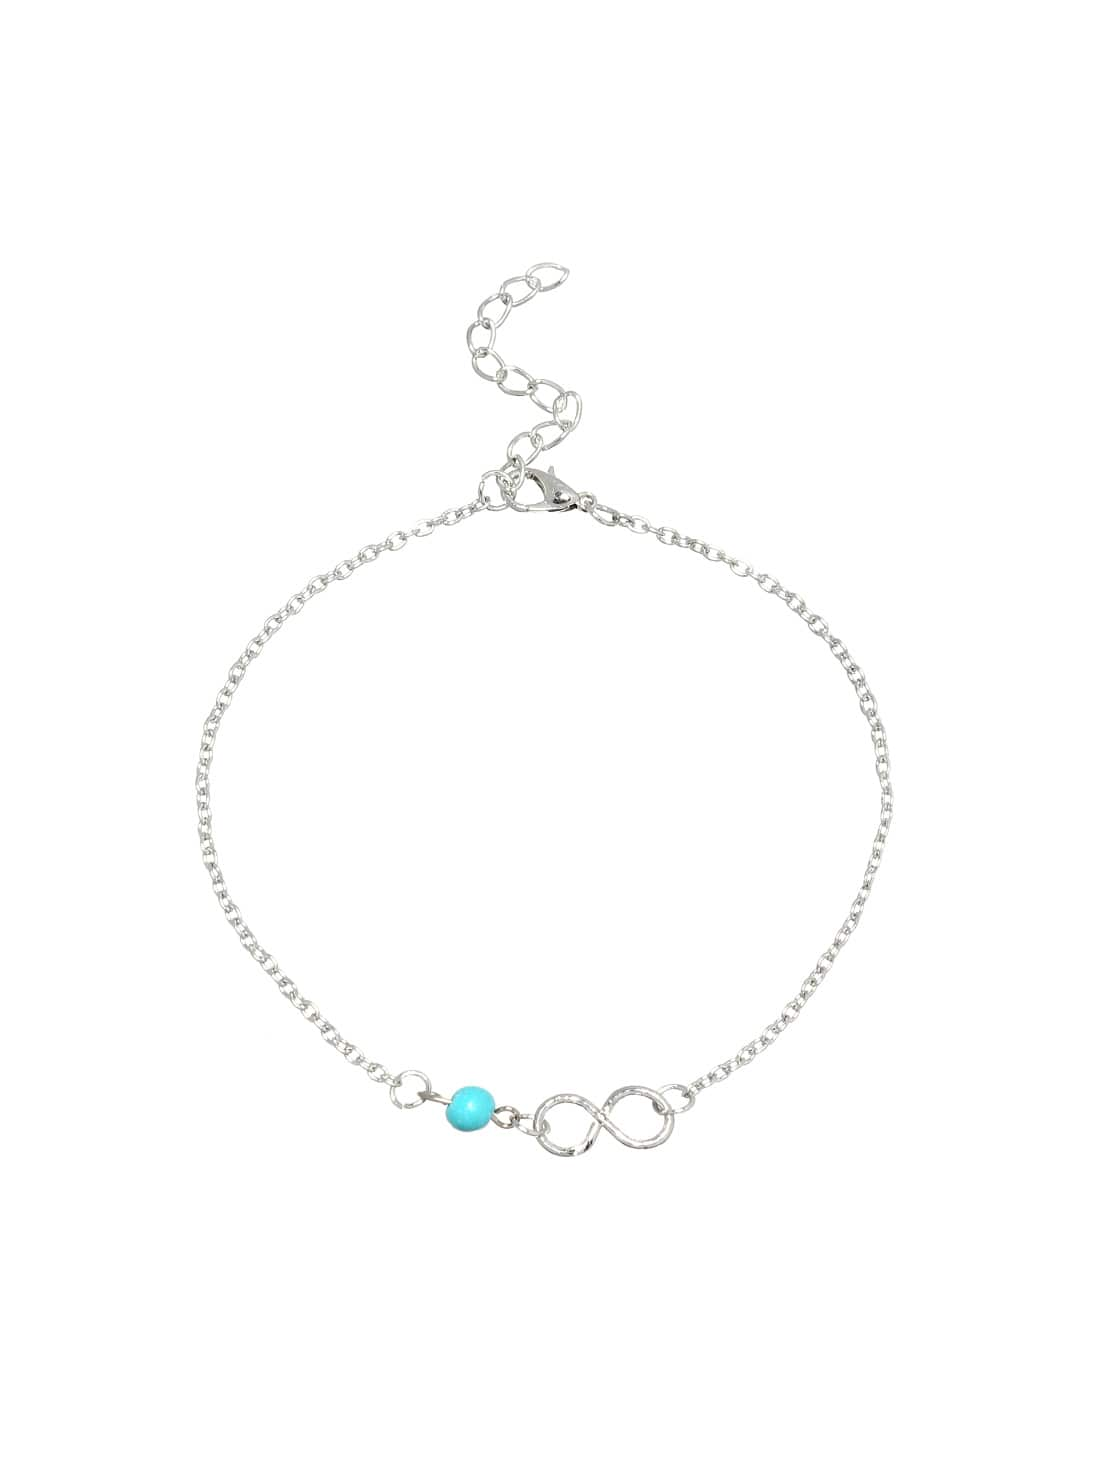 Image of Beaded Infinity Symbol Anklet